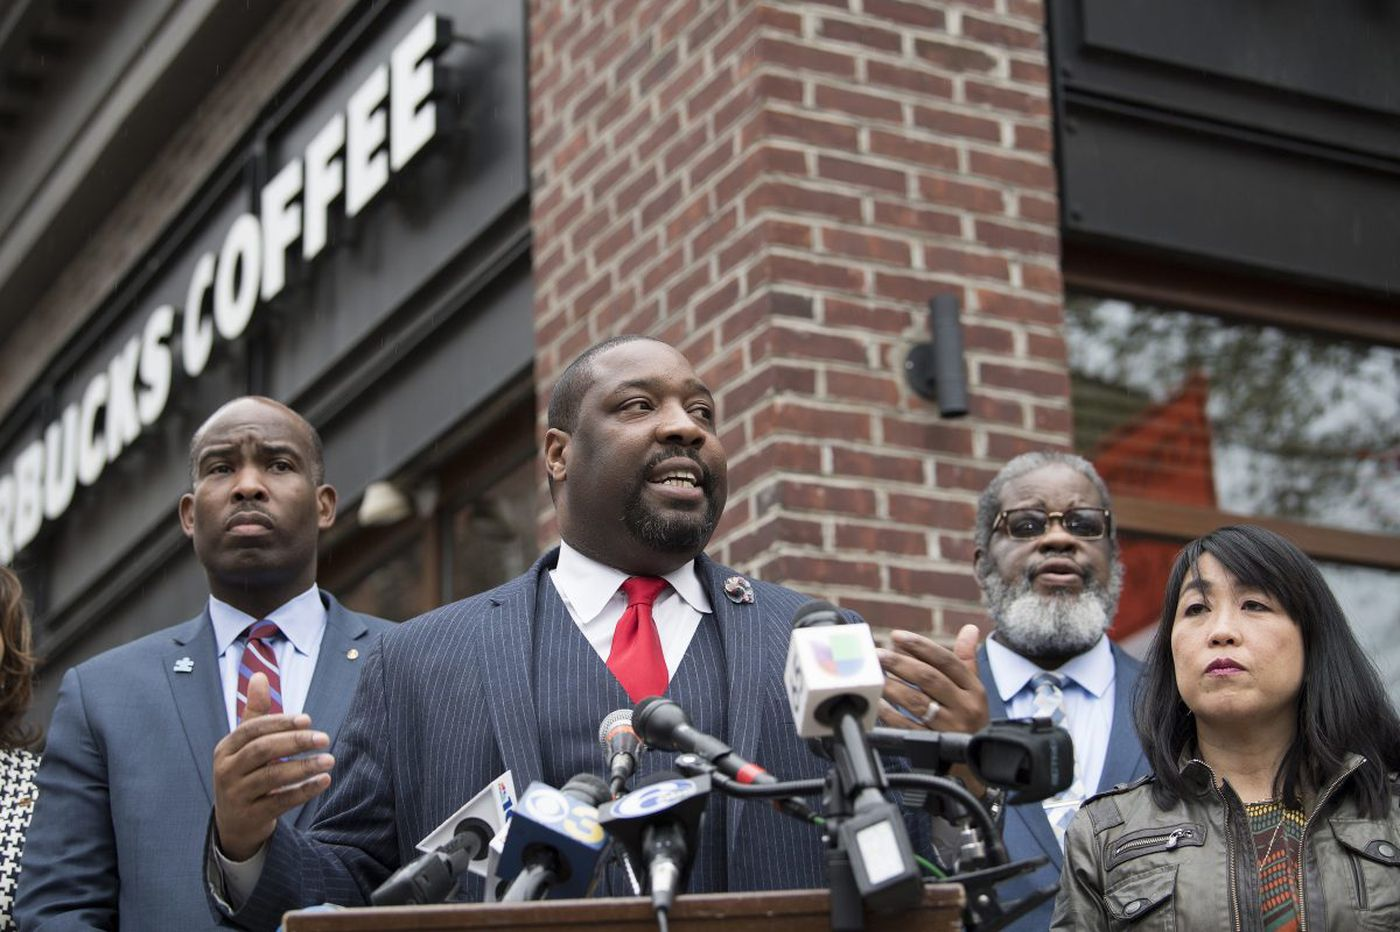 Instead of focusing on Starbucks, Philly politicians should look to fix police practices   Opinion